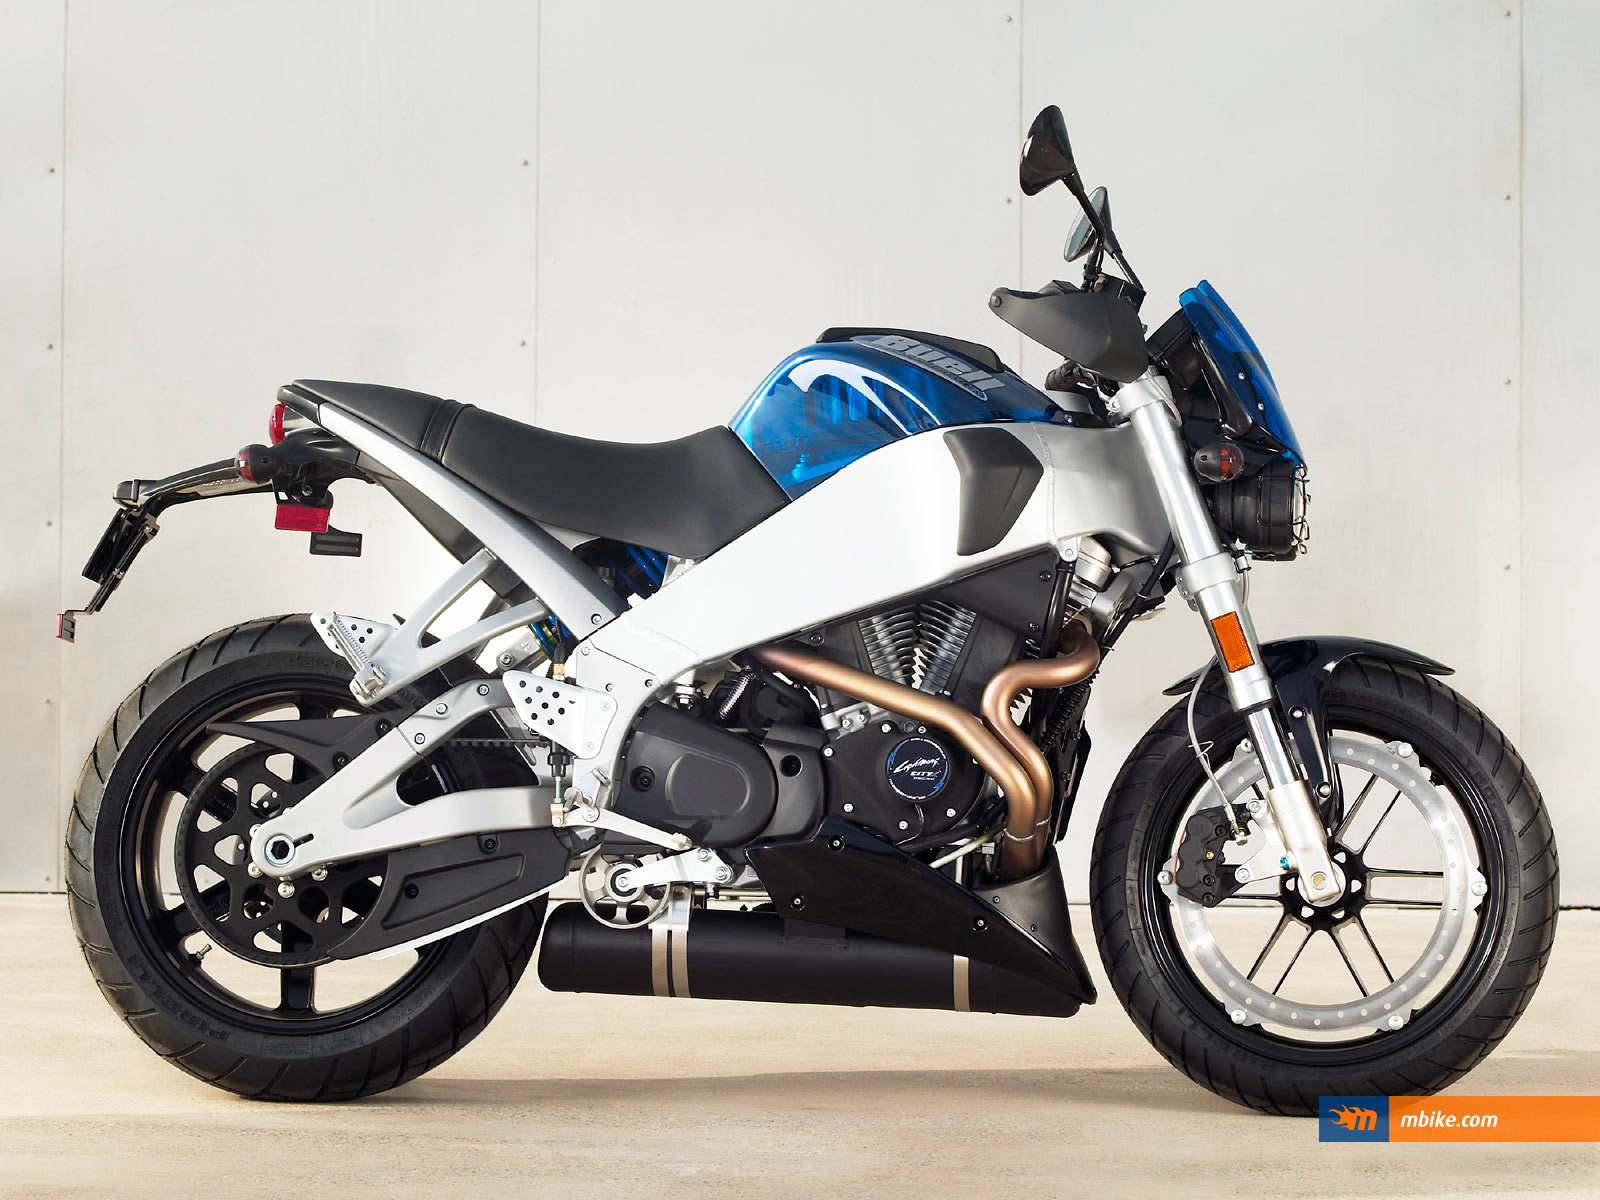 2006 Buell Lightning CityX XB9SX   motorcycle review @ Top